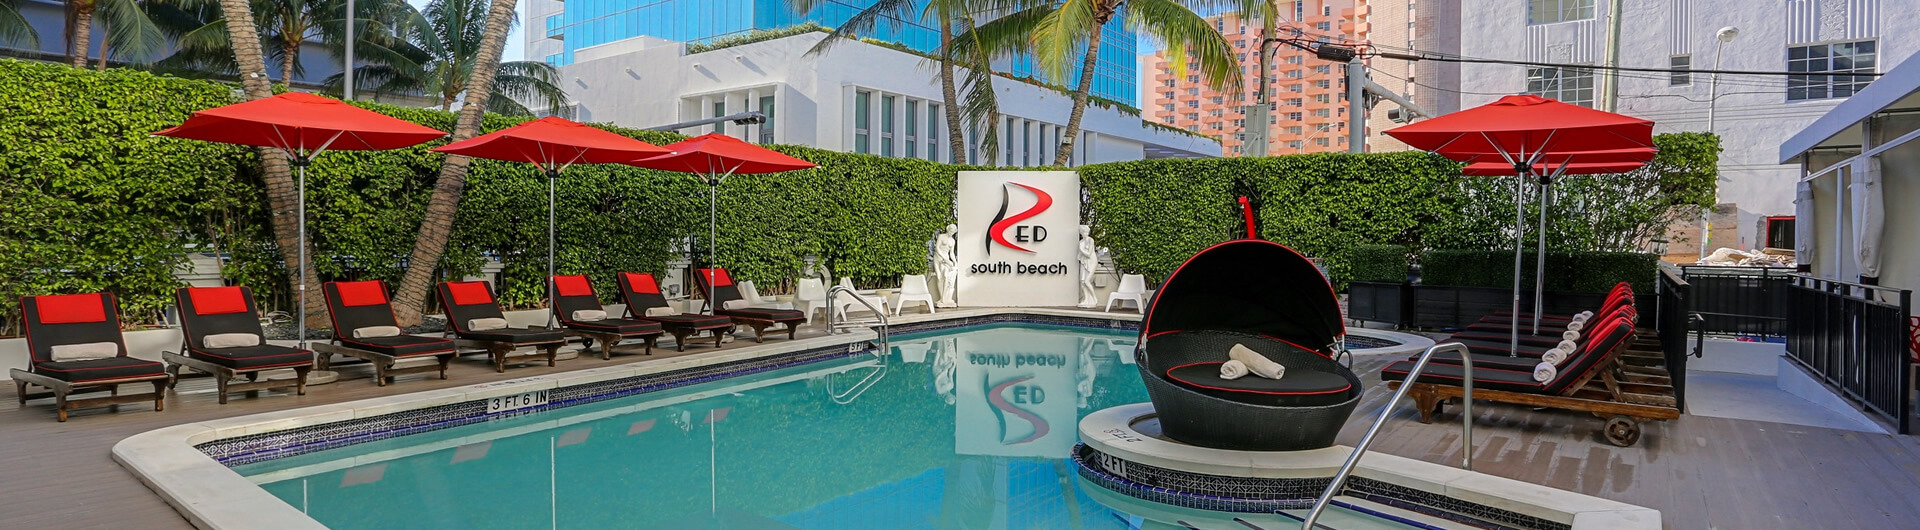 Hotel Miami Beach Fl Red South Pool